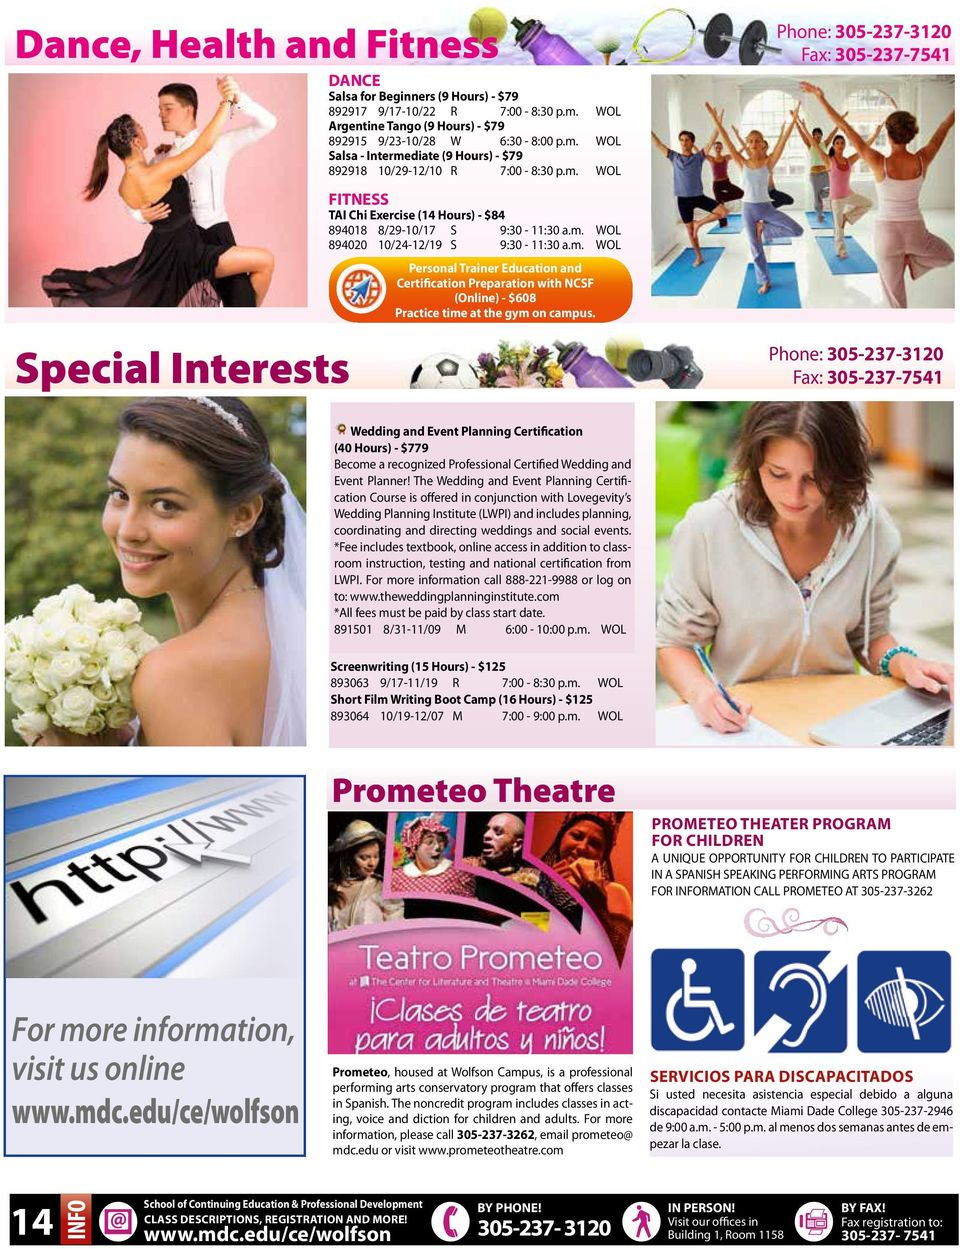 Special Interests Phone: 305-237-3120 Wedding and Event Planning Certification (40 Hours) - $779 Become a recognized Professional Certified Wedding and Event Planner!